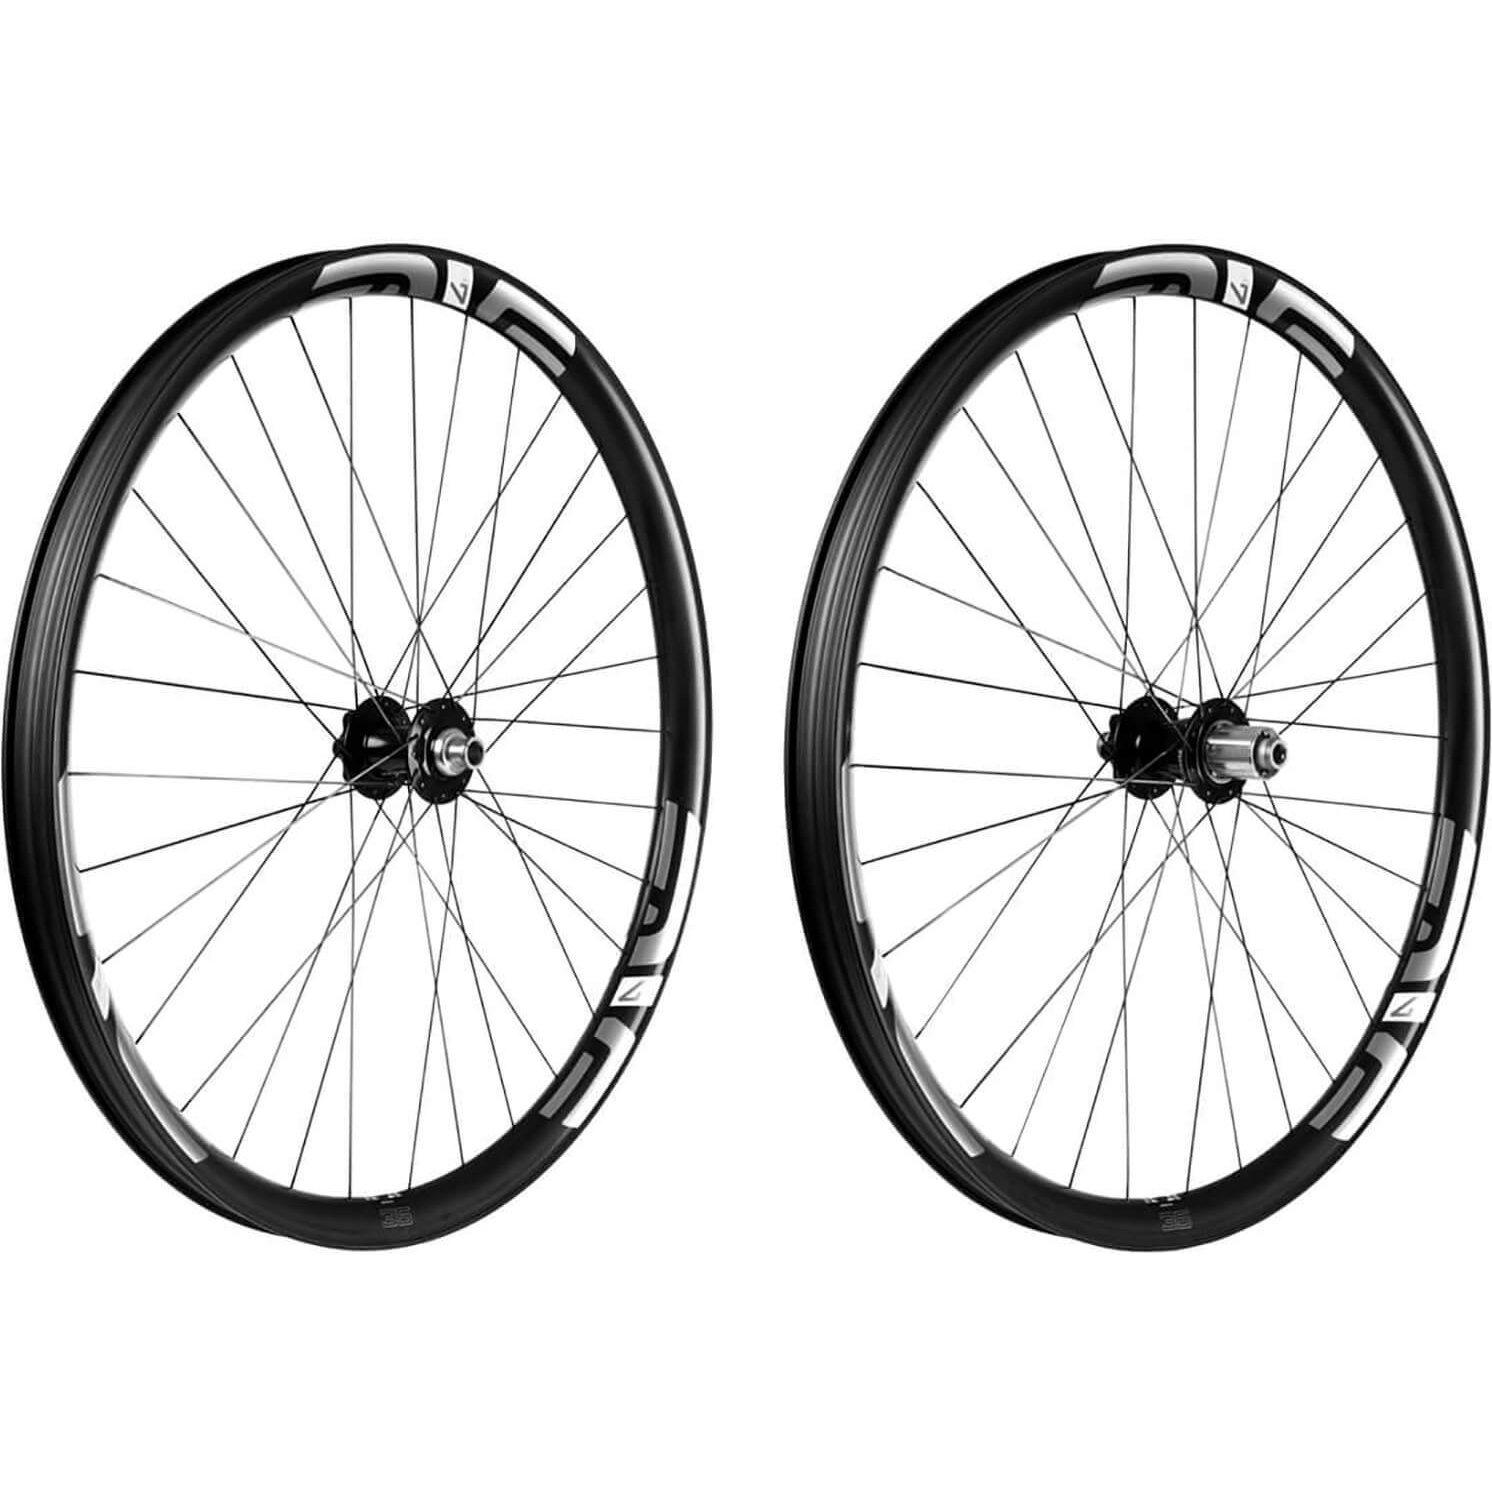 ENVE-ENVE M735 MTB Wheelset – Chris King Hubs-Black – Shimano-29-EN1327CK1002115009-saddleback-elite-performance-cycling